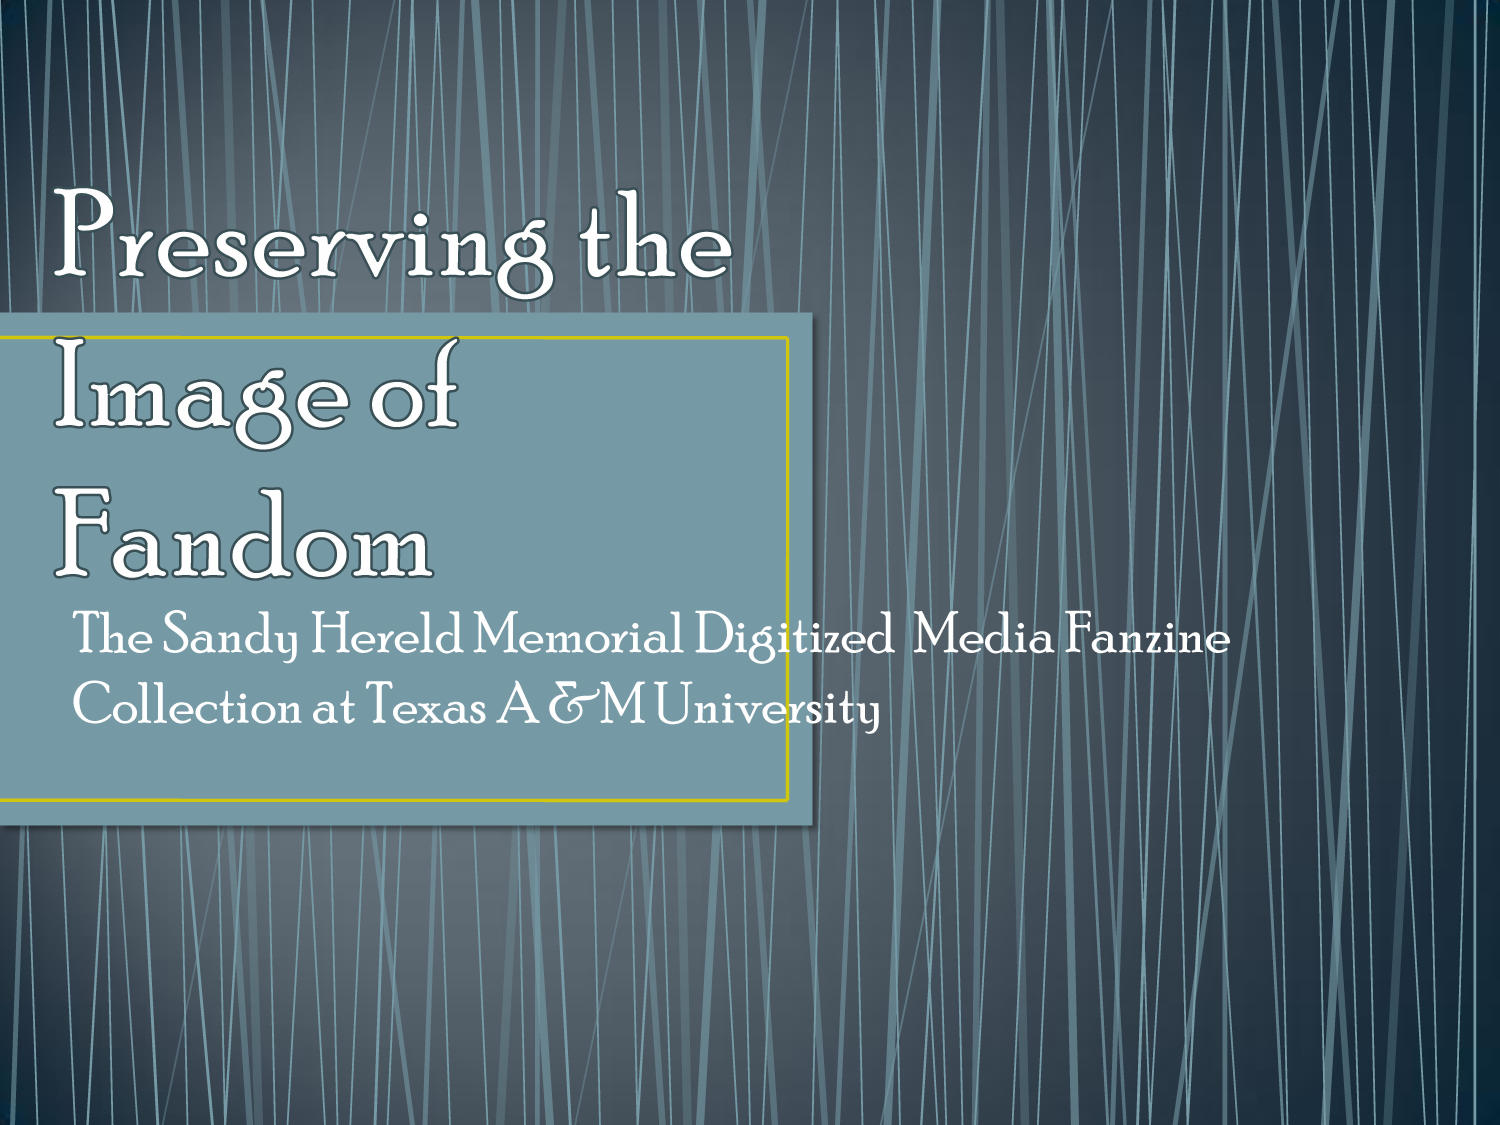 Preserving the Image of Fandom: The Sandy Hereld Memorial Digitized Media Fanzine Collection at Texas A & M University                                                                                                      [Sequence #]: 1 of 15